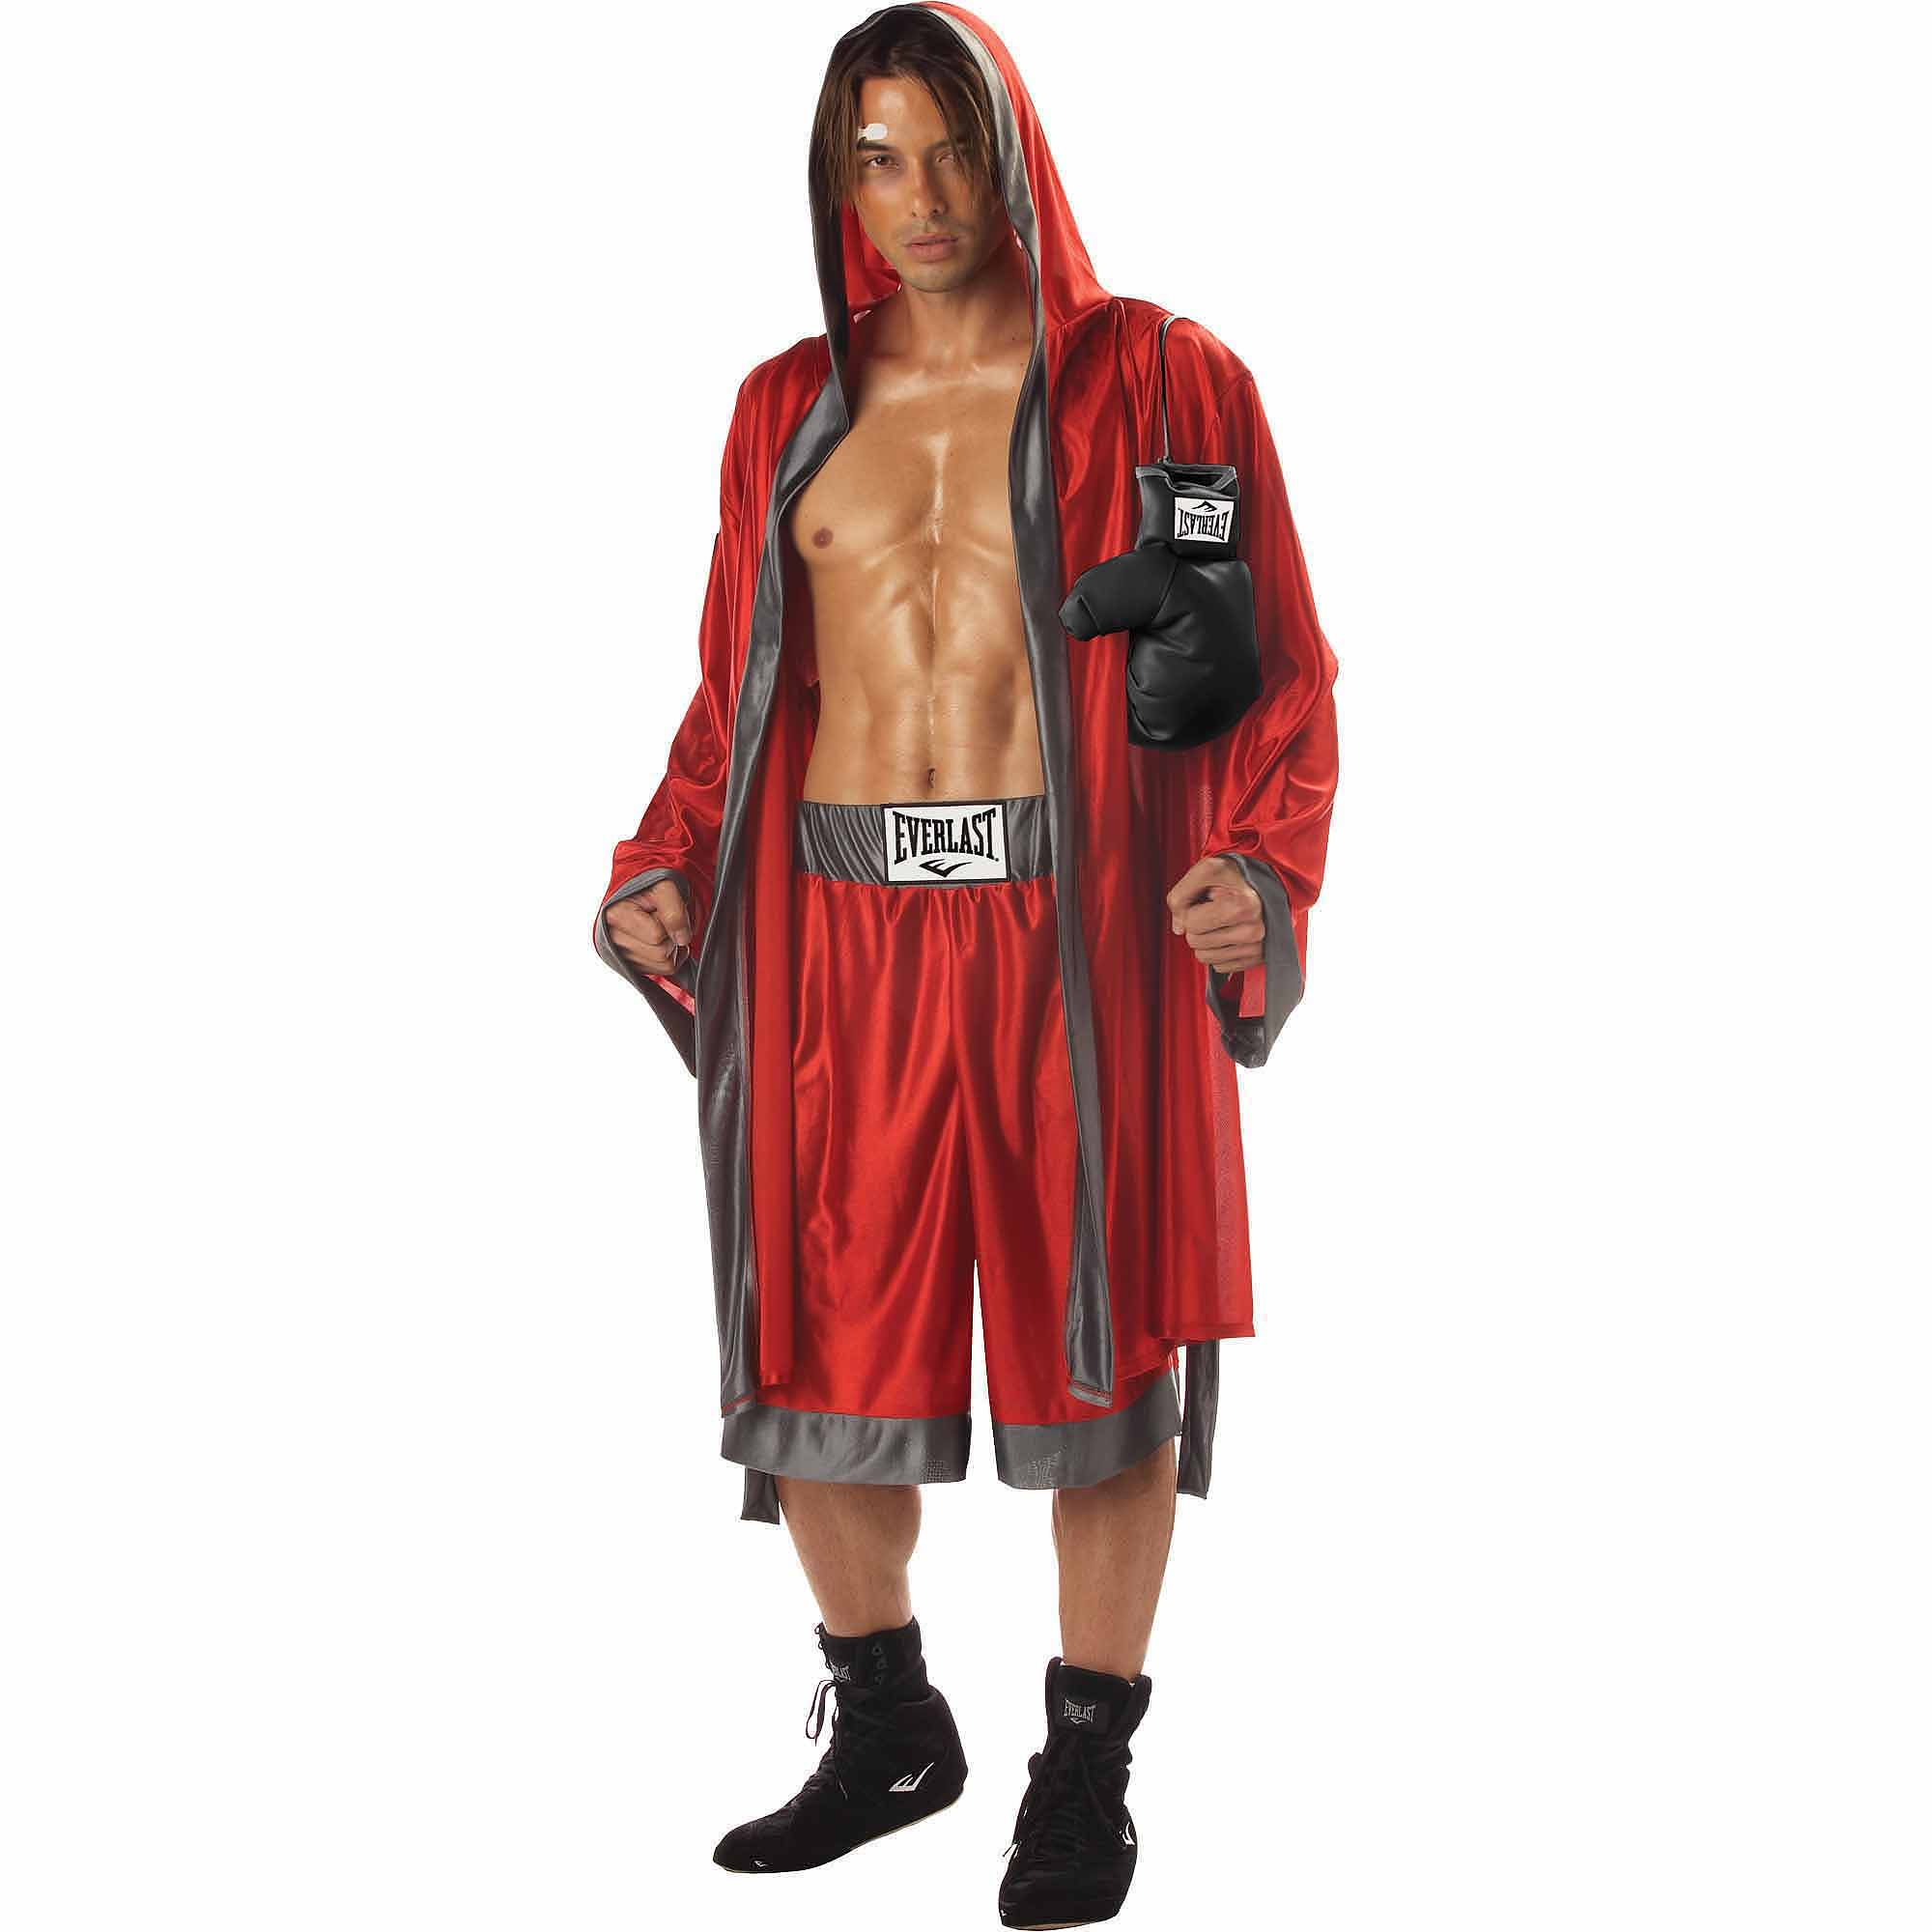 Everlast Boxer Adult Halloween Costume